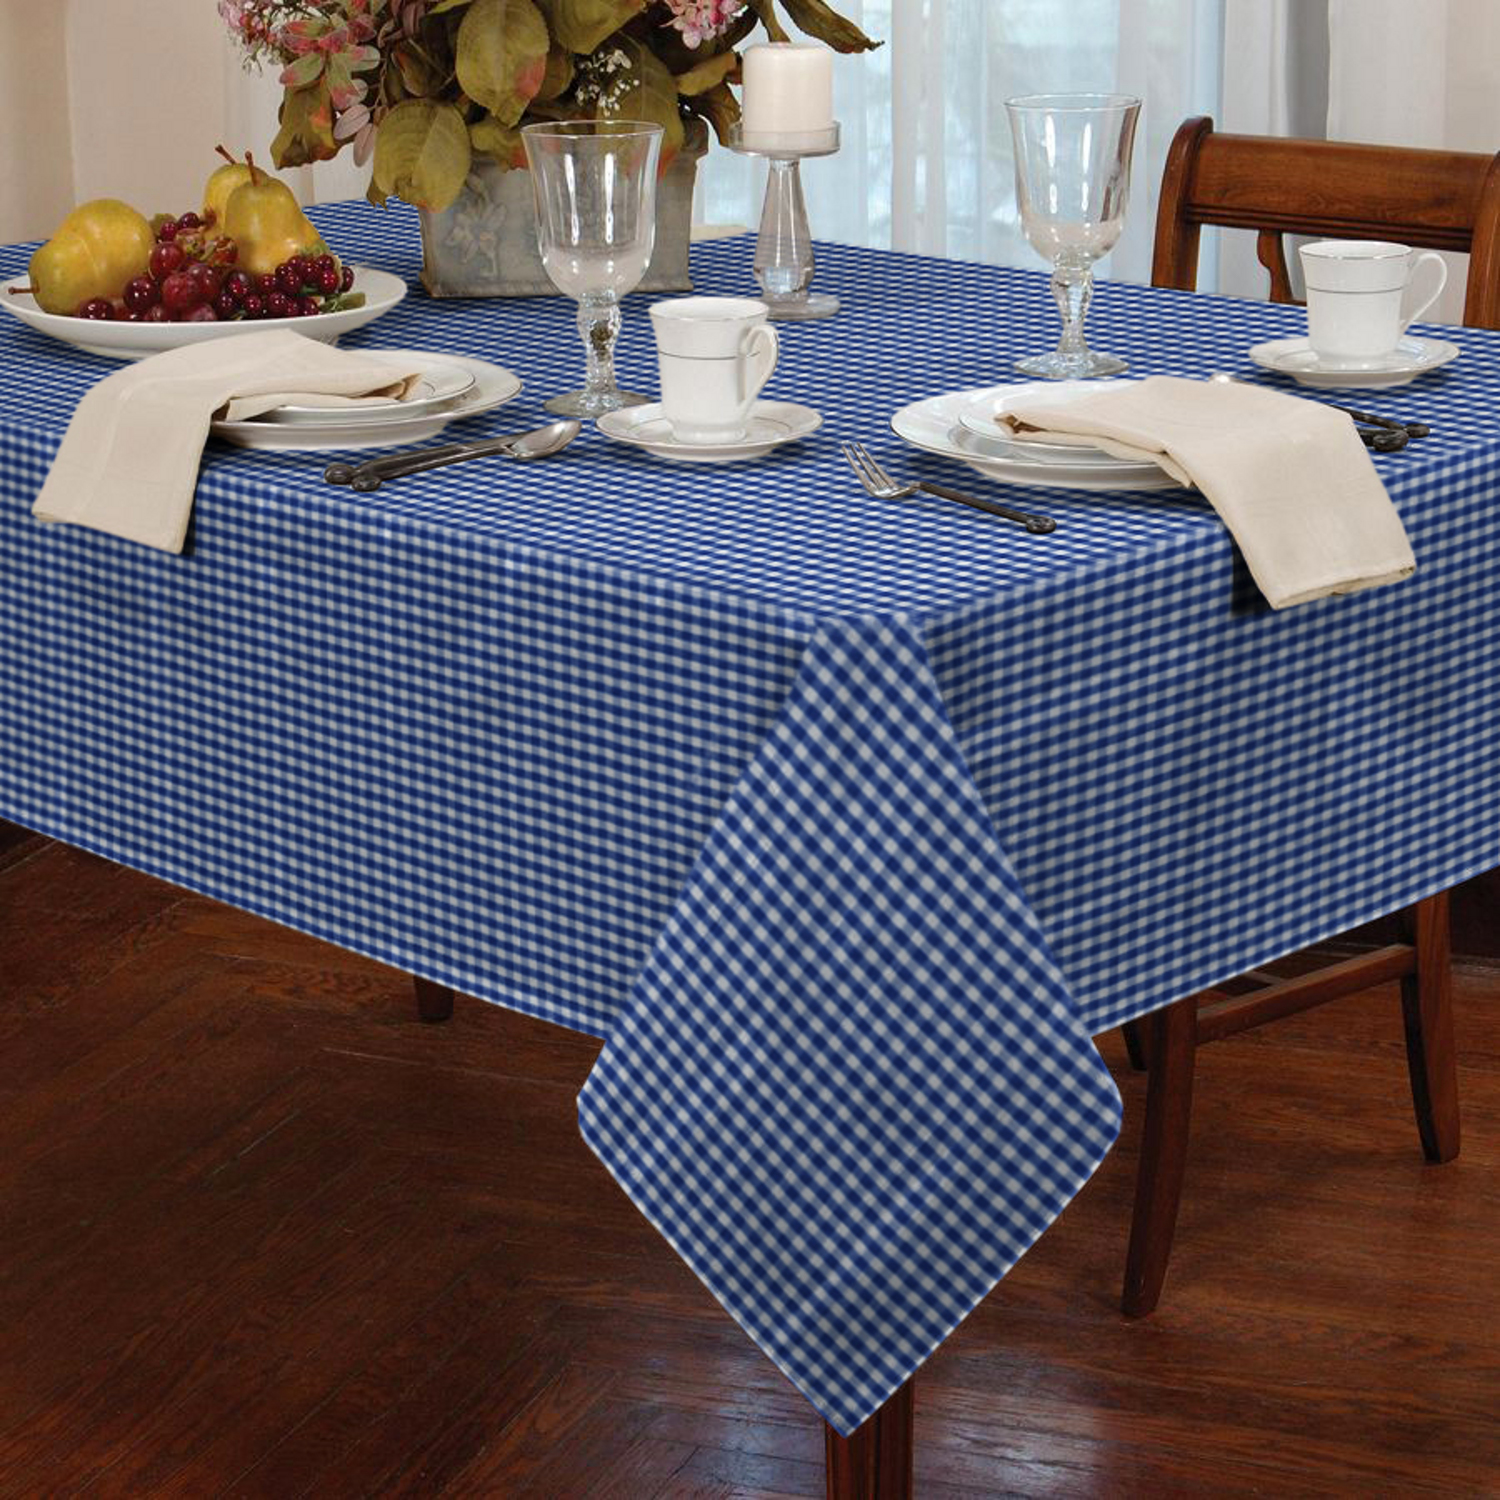 Tablecloth Traditional Gingham Check Round Square Oblong